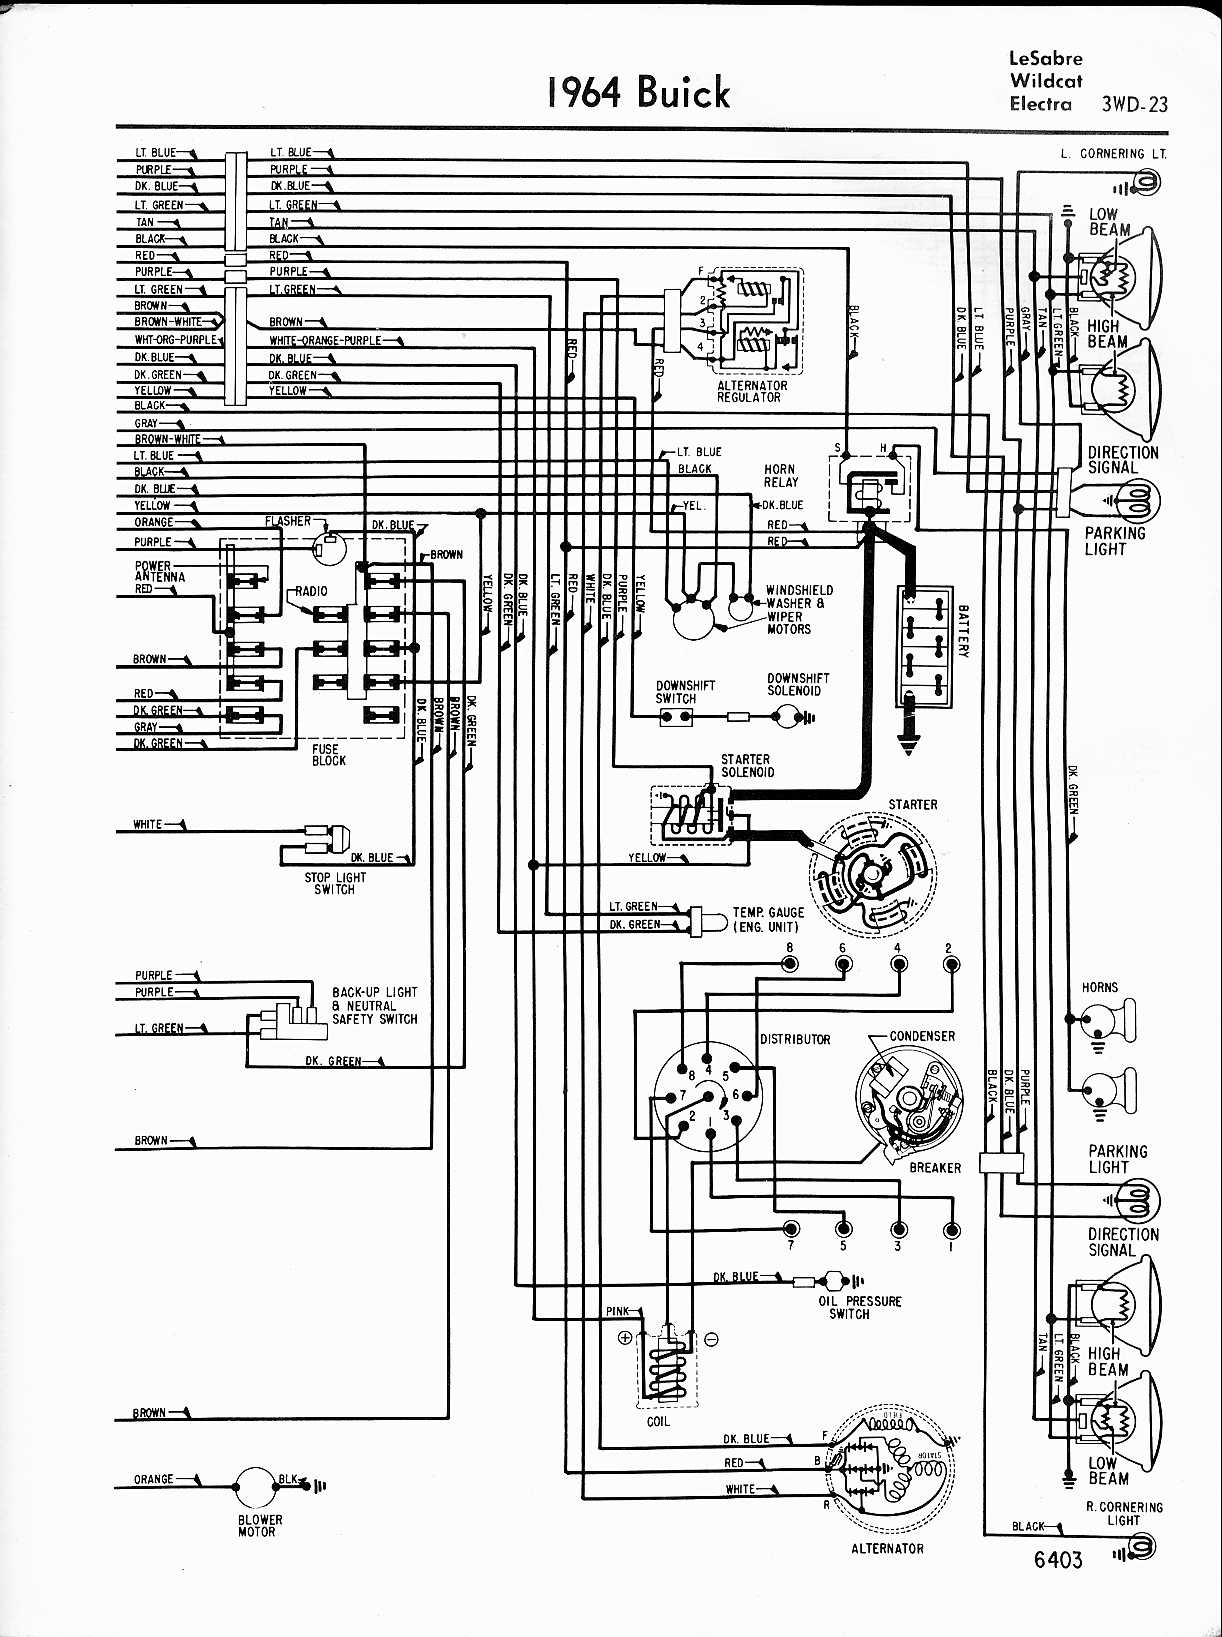 8CAE4 Kawasaki 250 Mojave Wiring Diagram | Wiring Resources on honda xr200 wiring diagram, harley davidson wiring diagram, kawasaki lakota motor, kawasaki lakota valves, kawasaki lakota wheels, kawasaki lakota clutch, kawasaki lakota exhaust, kawasaki lakota headlight,